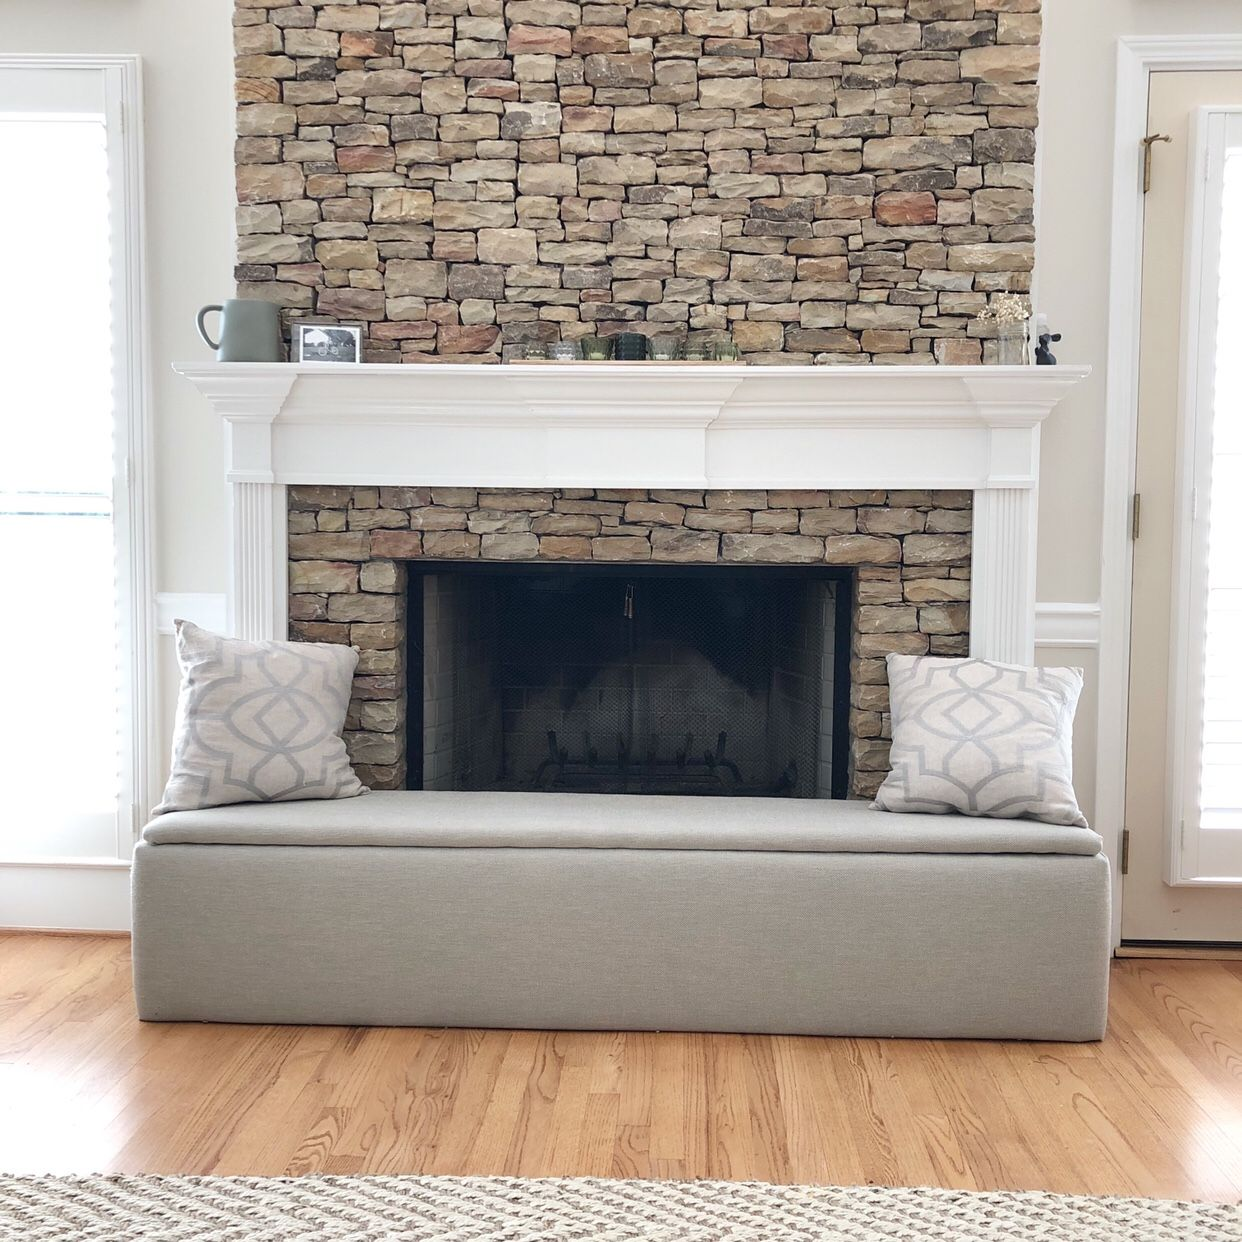 How to make a Fireplace Hearth Cover (With images